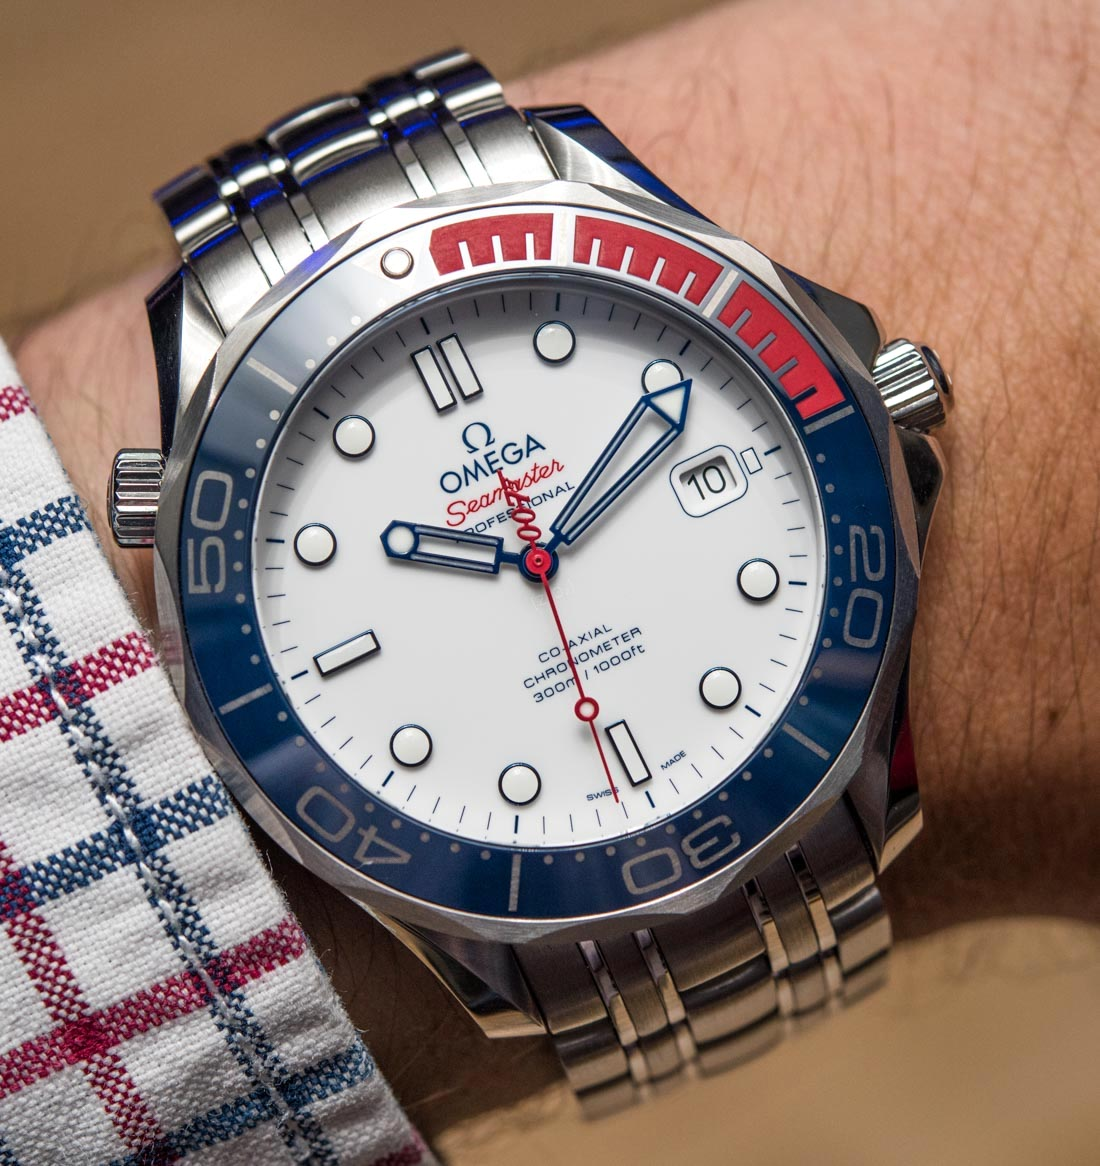 7942c725061 Omega Seamaster Diver 300M  Commander s Watch  Limited Edition Inspired By  James Bond 007 Hands